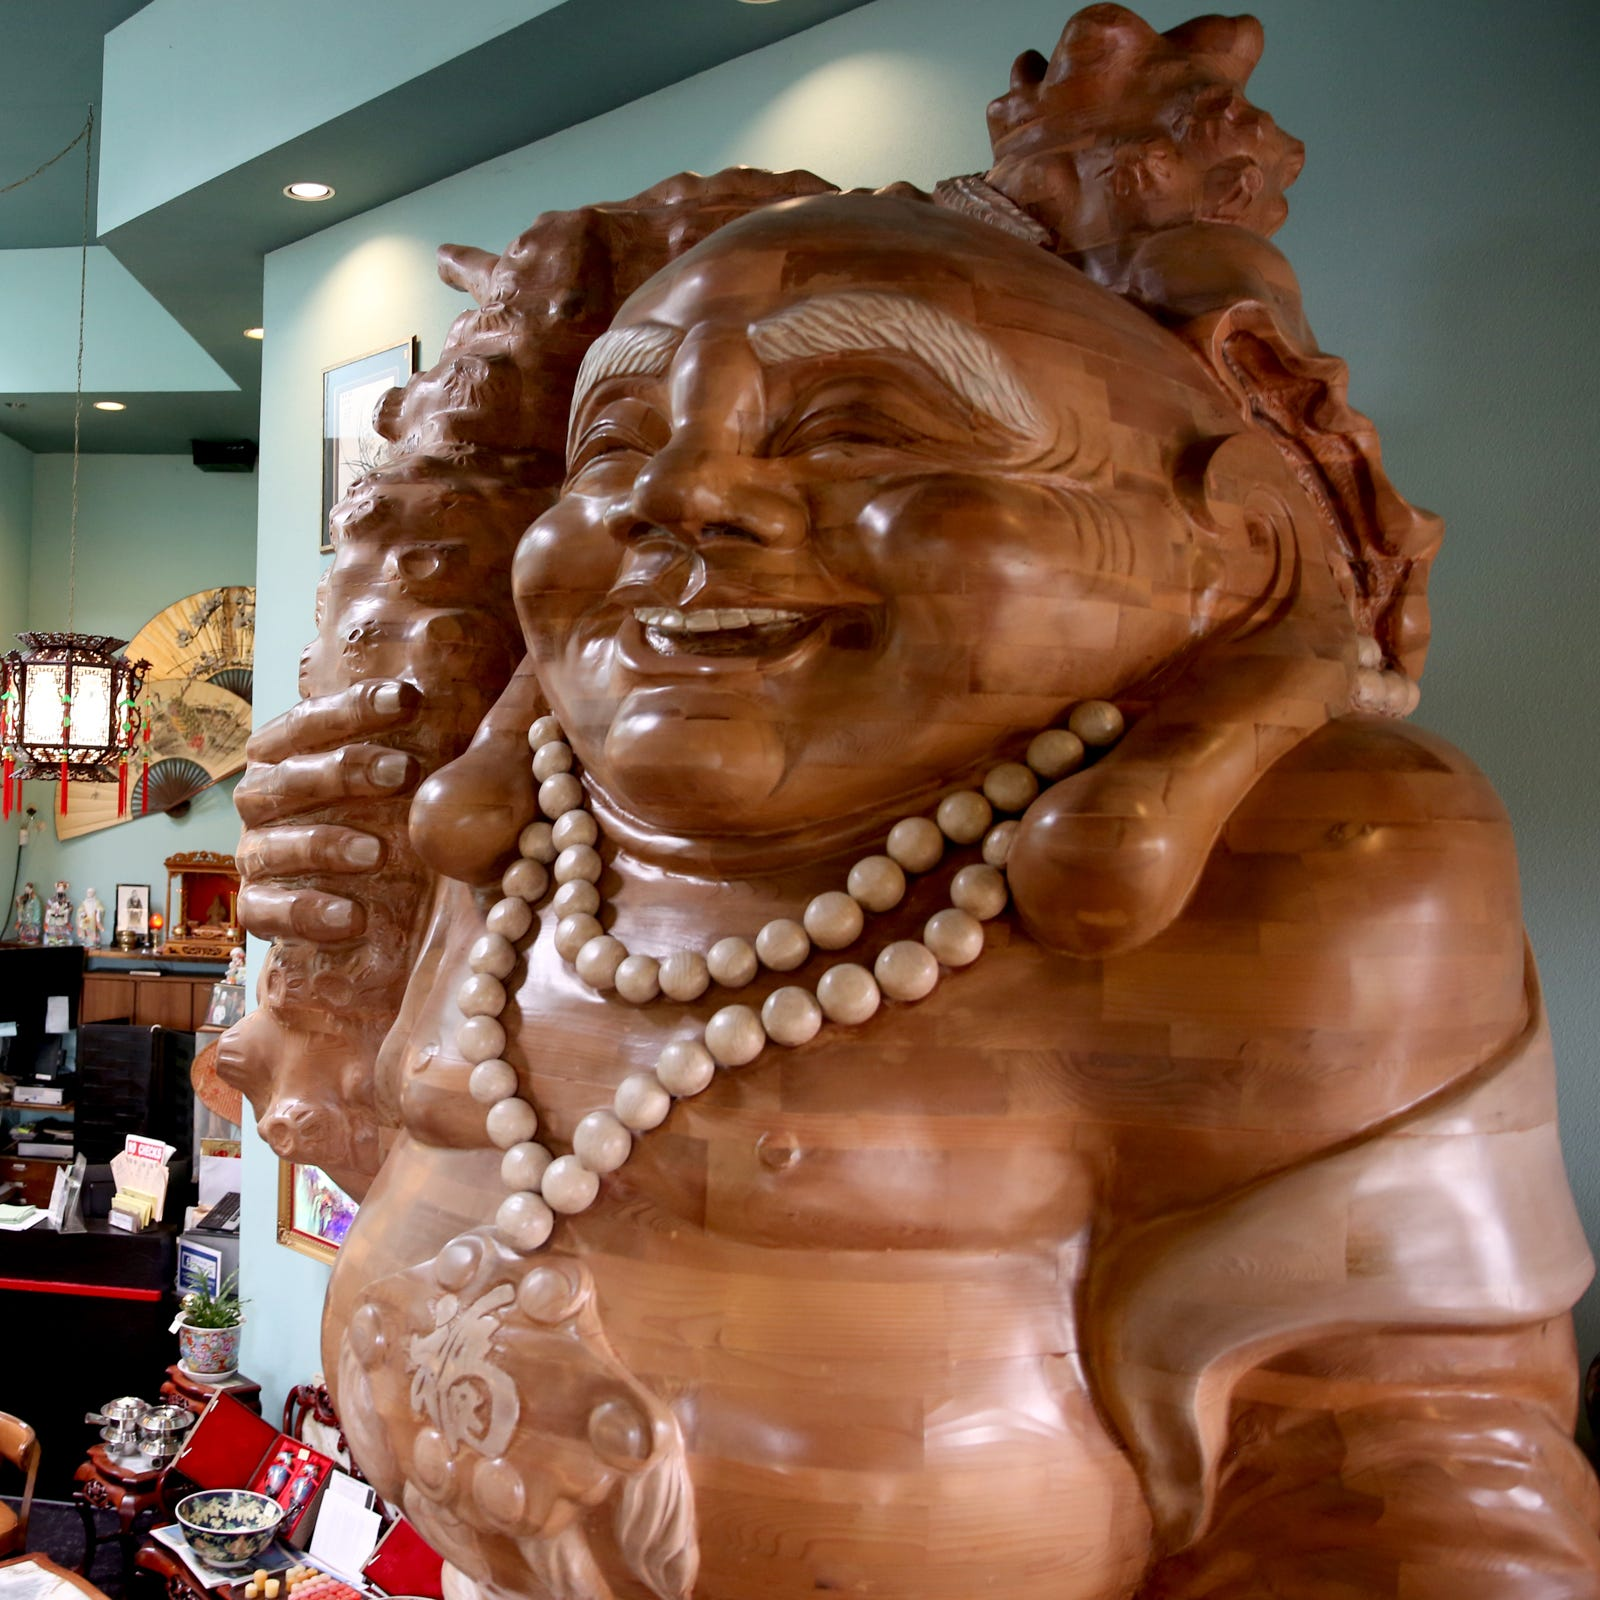 Wanted: New home for the 14-foot, 3,000-lb. happy Buddha from Kwan's restaurant